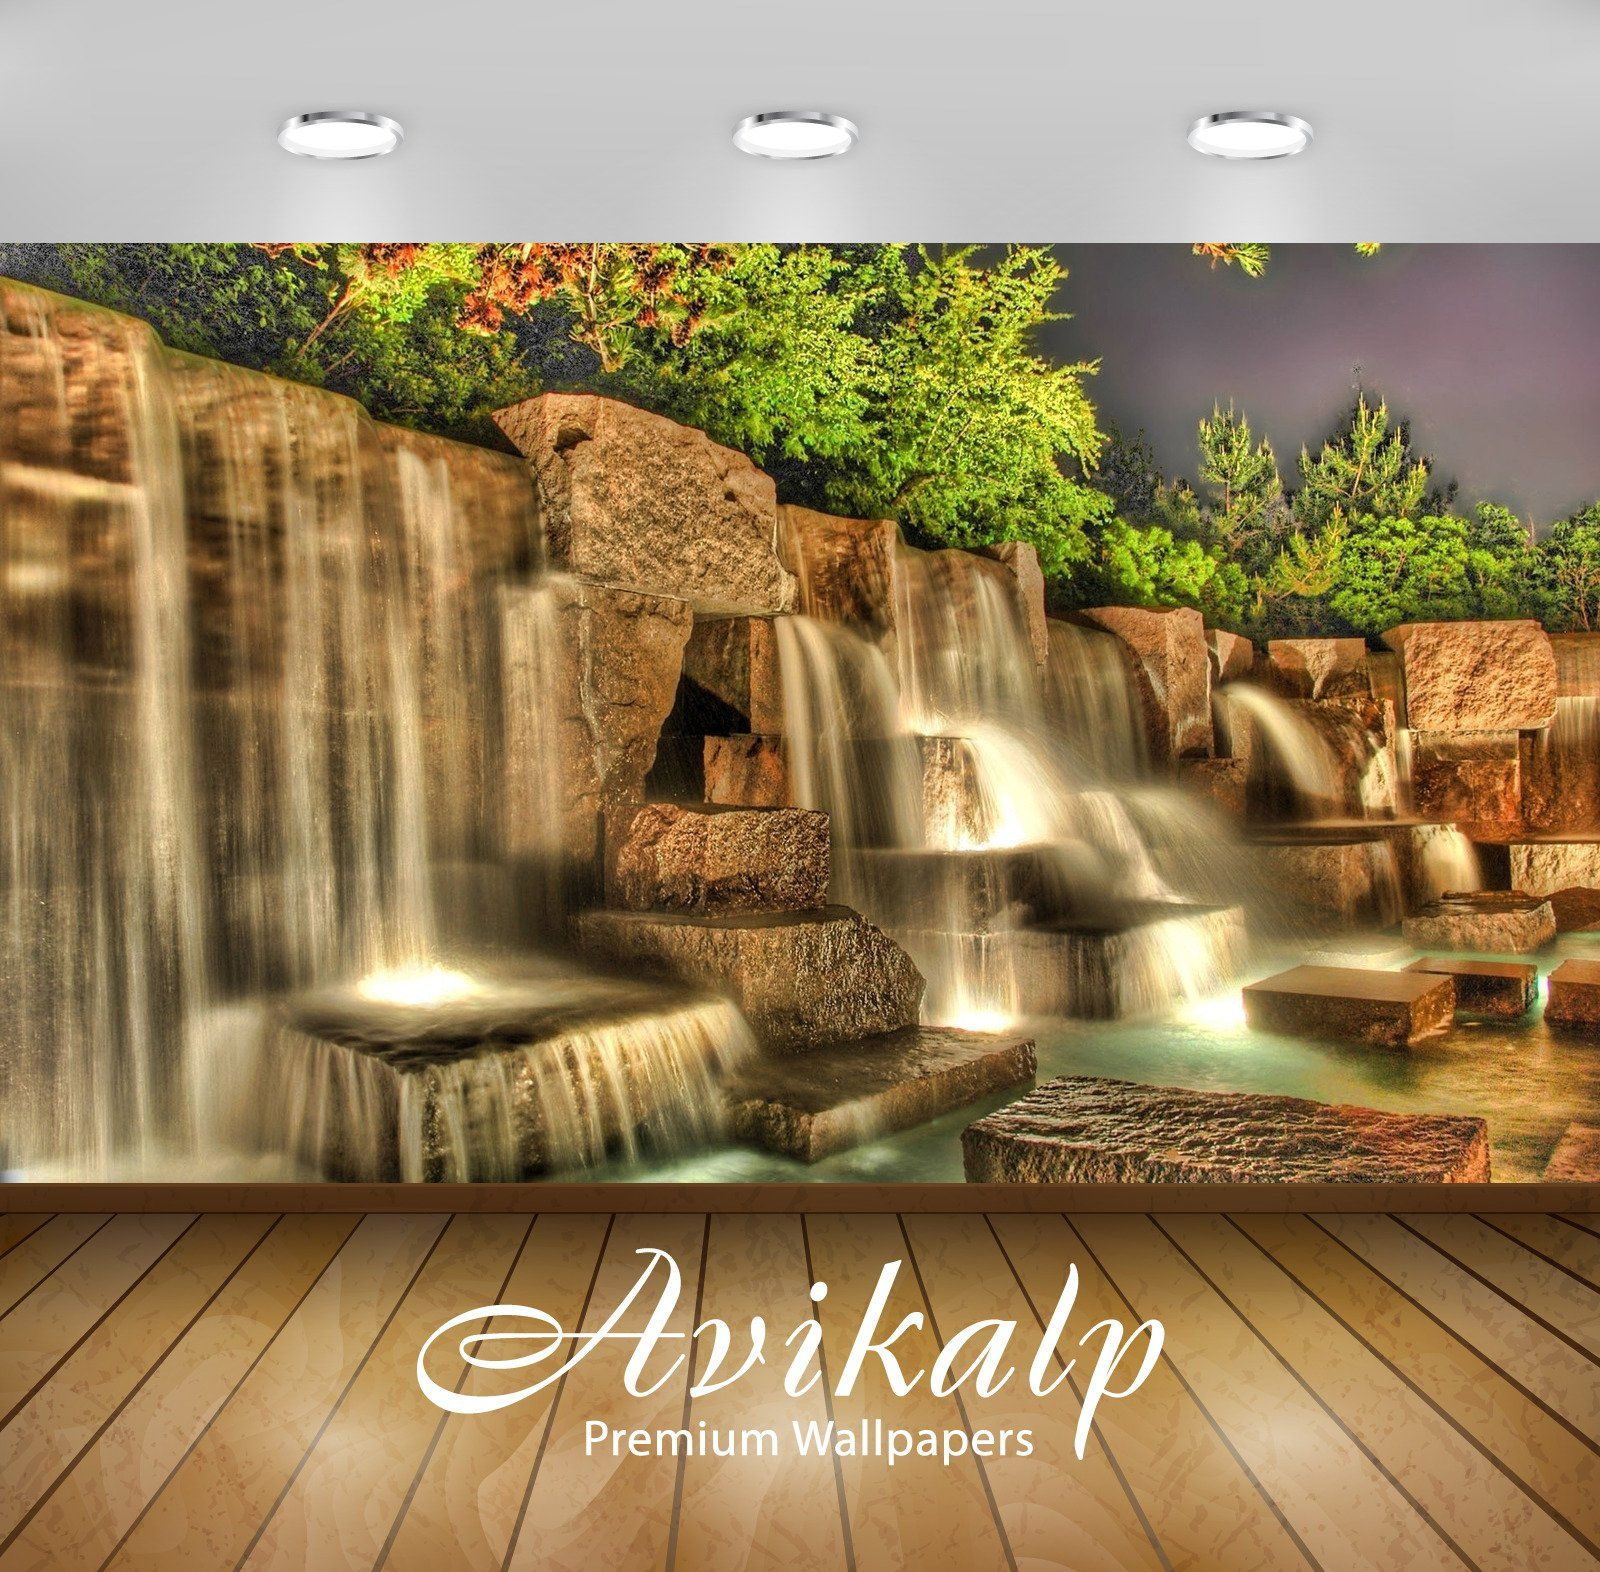 Avikalp Exclusive Awi5107 Artificial Waterfall In A Garden Nature Full Hd Wallpapers For Living Room Water Live Wallpaper Waterfall Wallpaper Landscape Wallpaper